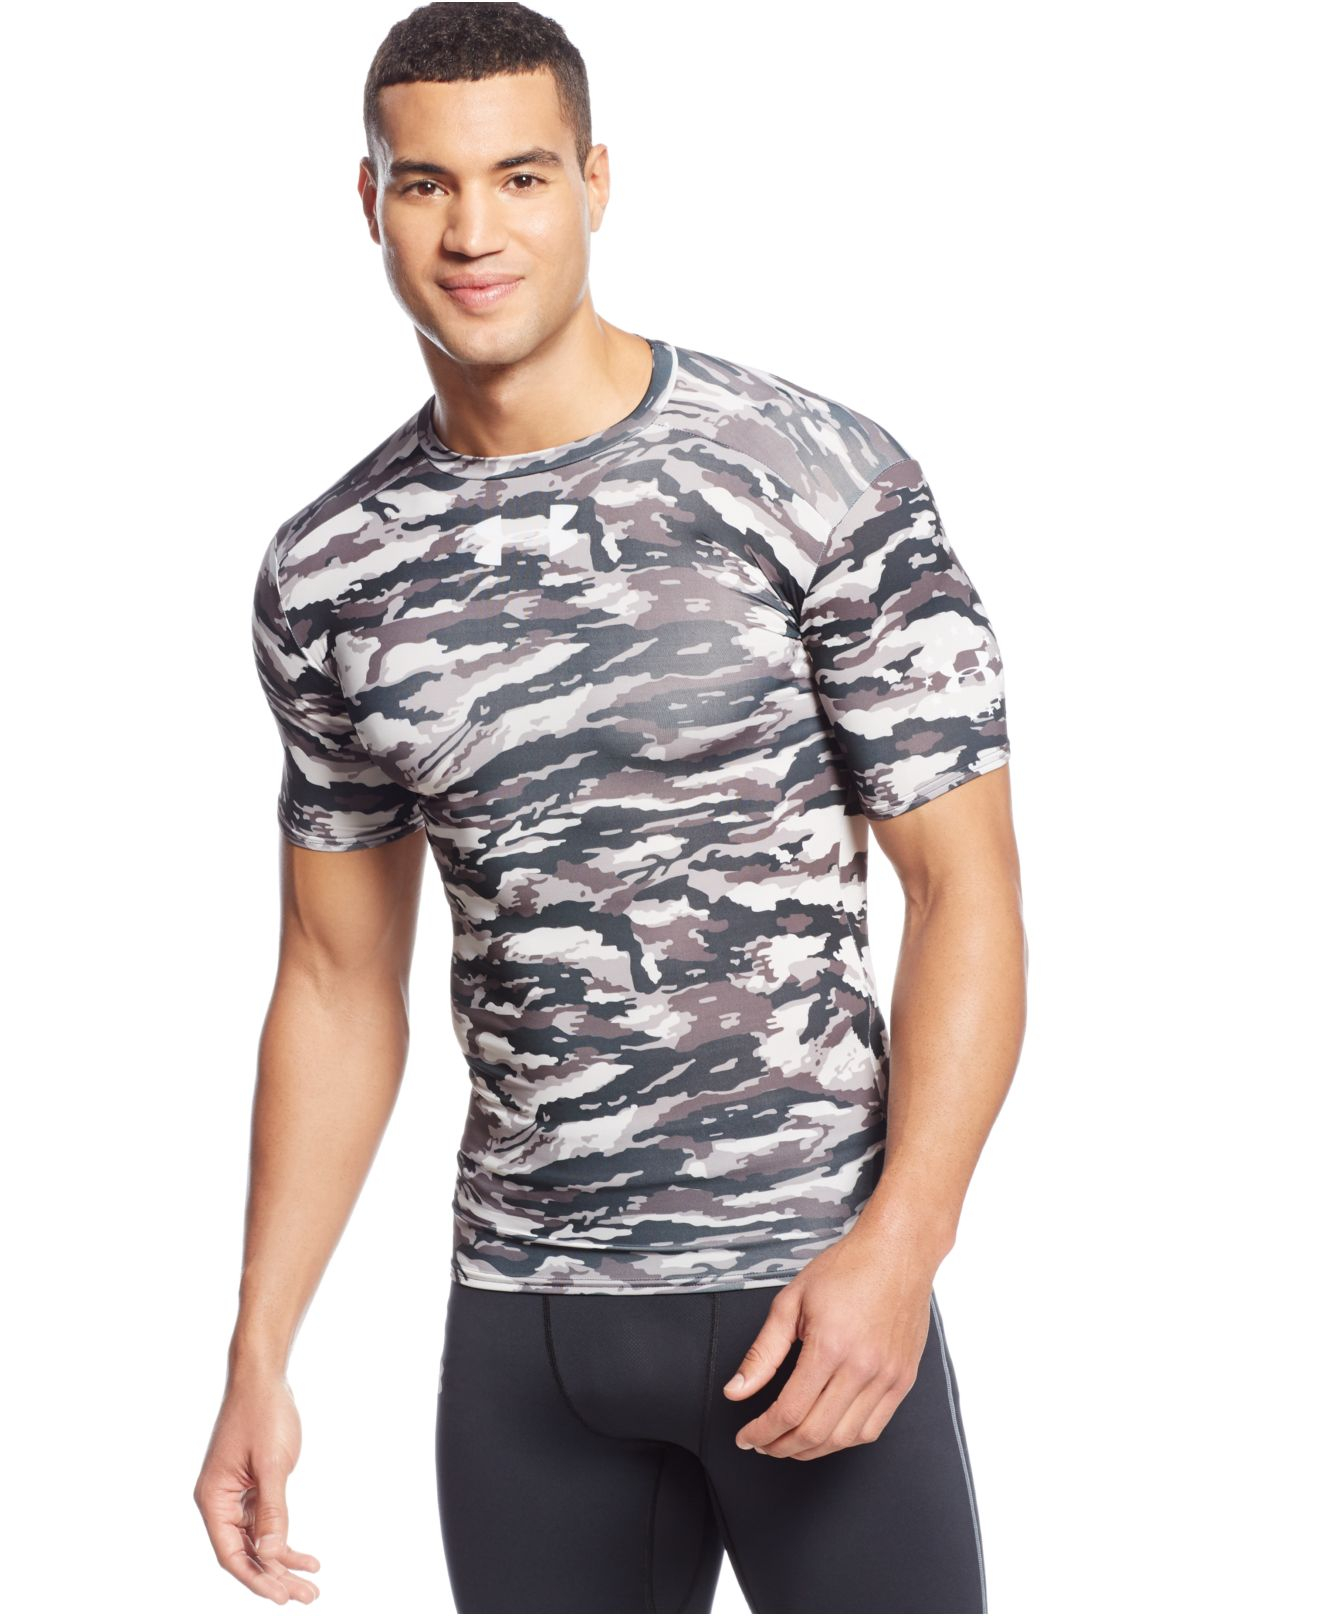 fae830b5 Under Armour Woodland Compression T-shirt in Black for Men - Lyst